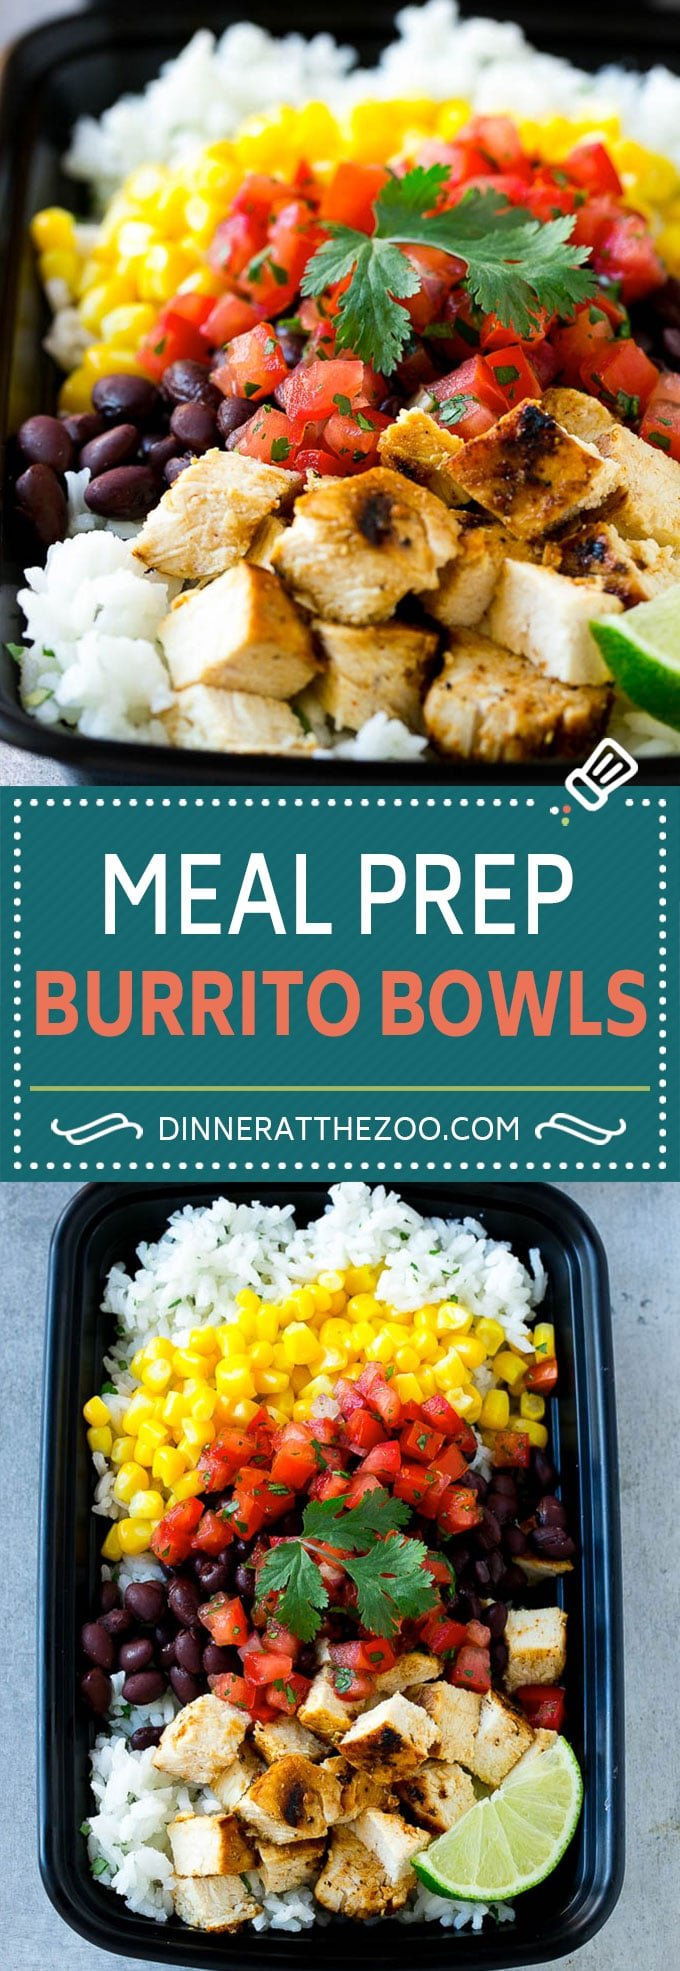 36 easy meal prep recipes dinner at the zoo meal prep burrito bowls chicken burrito bowls meal prep recipe burrito bowl recipe 36 easy forumfinder Images